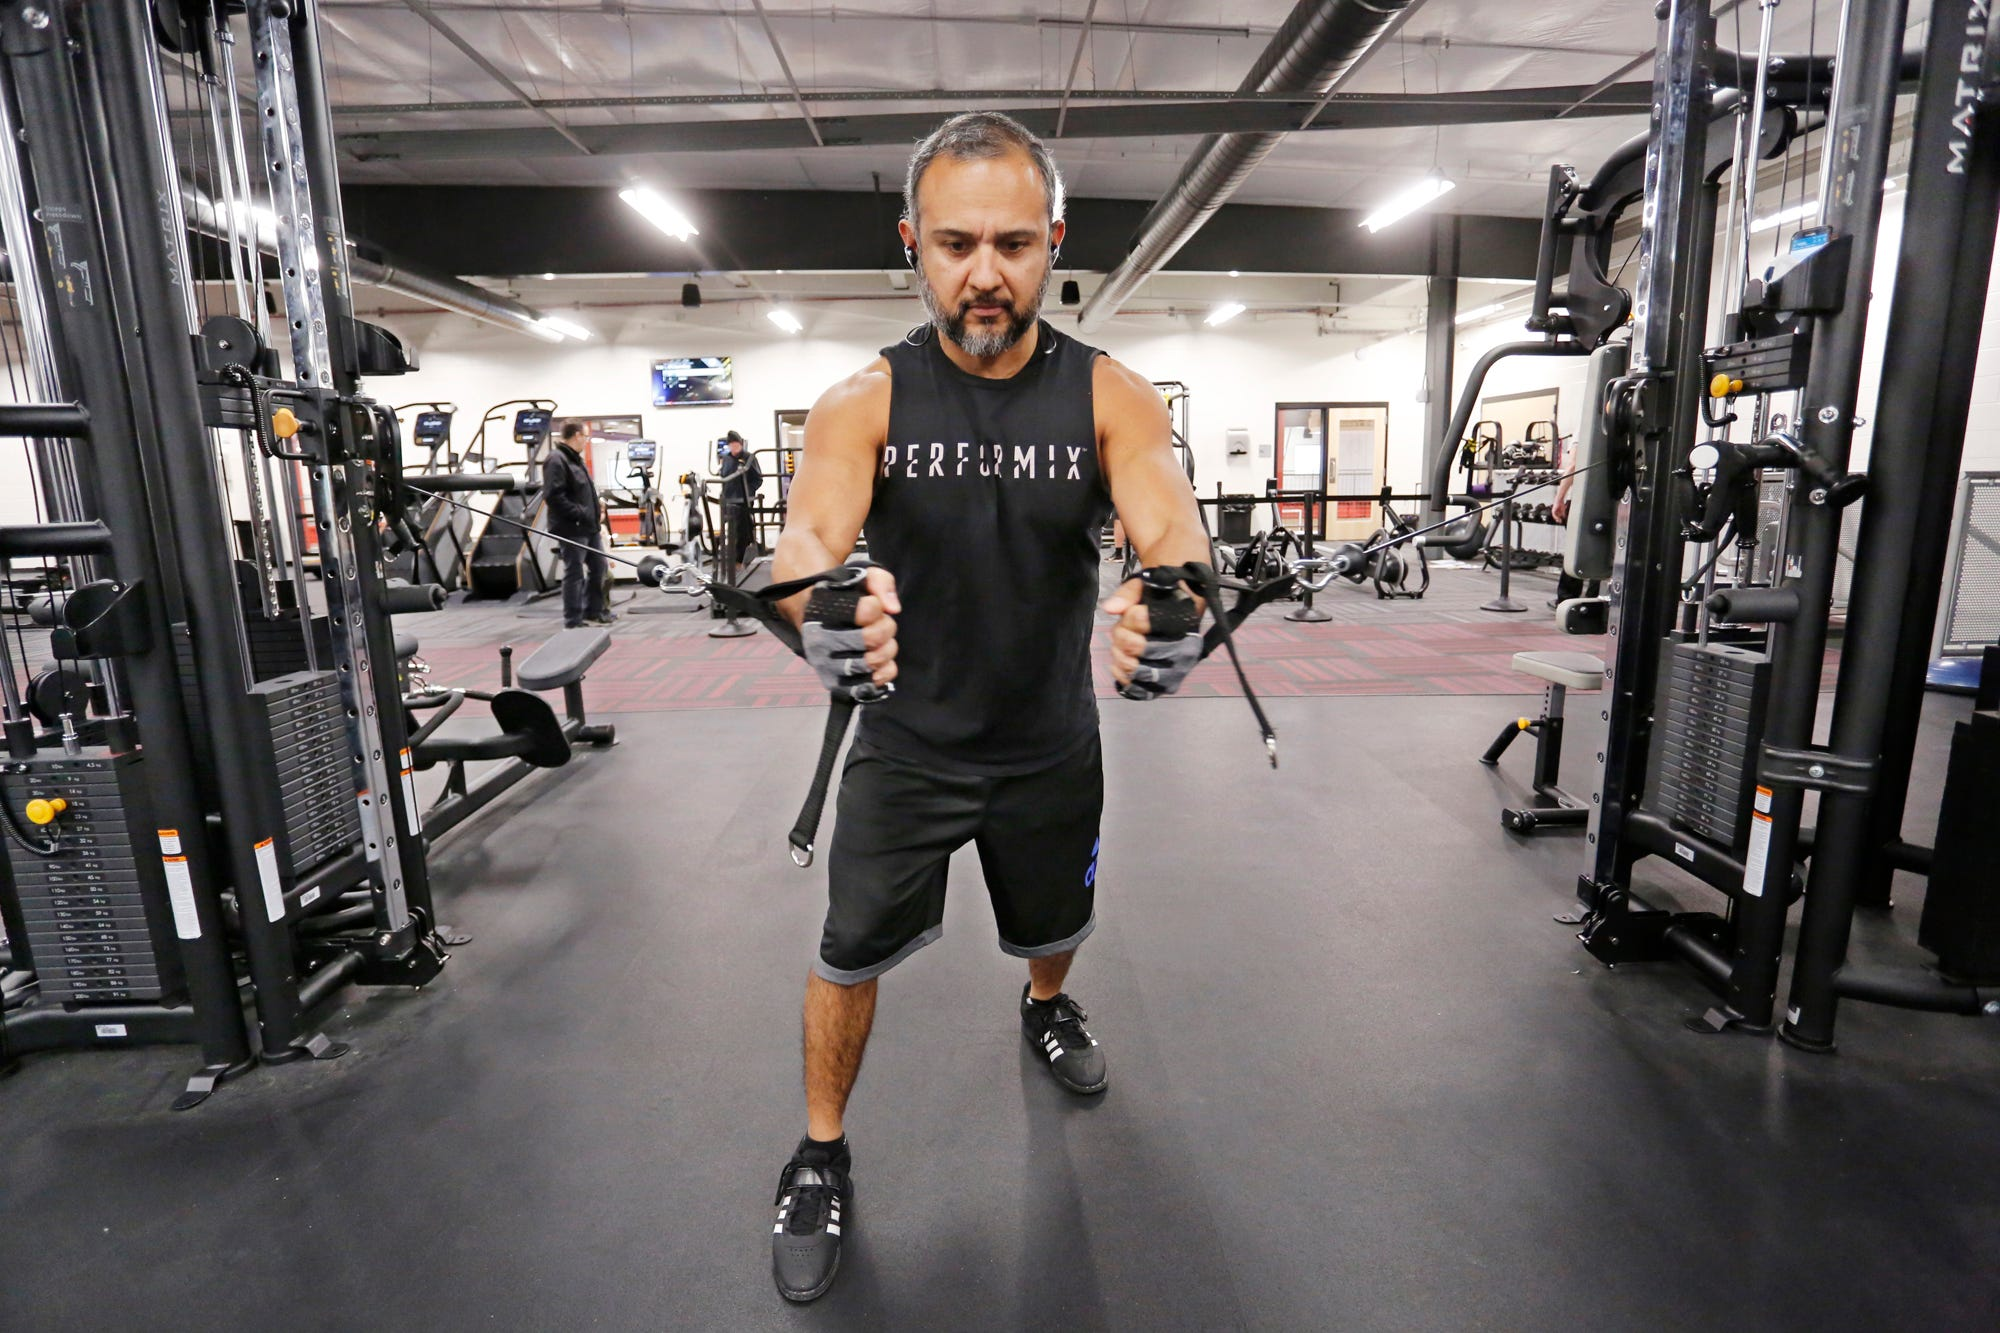 Joe Garcia works out with a cable cross over inside the James and Cari Gothard Wellness Center Thursday, December 6, 2018, at the new Lafayette Family YMCA, 3001 S. Creasy Lane in Lafayette. Garcia lives and works in Frankfort, but says he can get to the YMCA in quick 20 minute drive. The facility celebrated its grand opening Thursday.